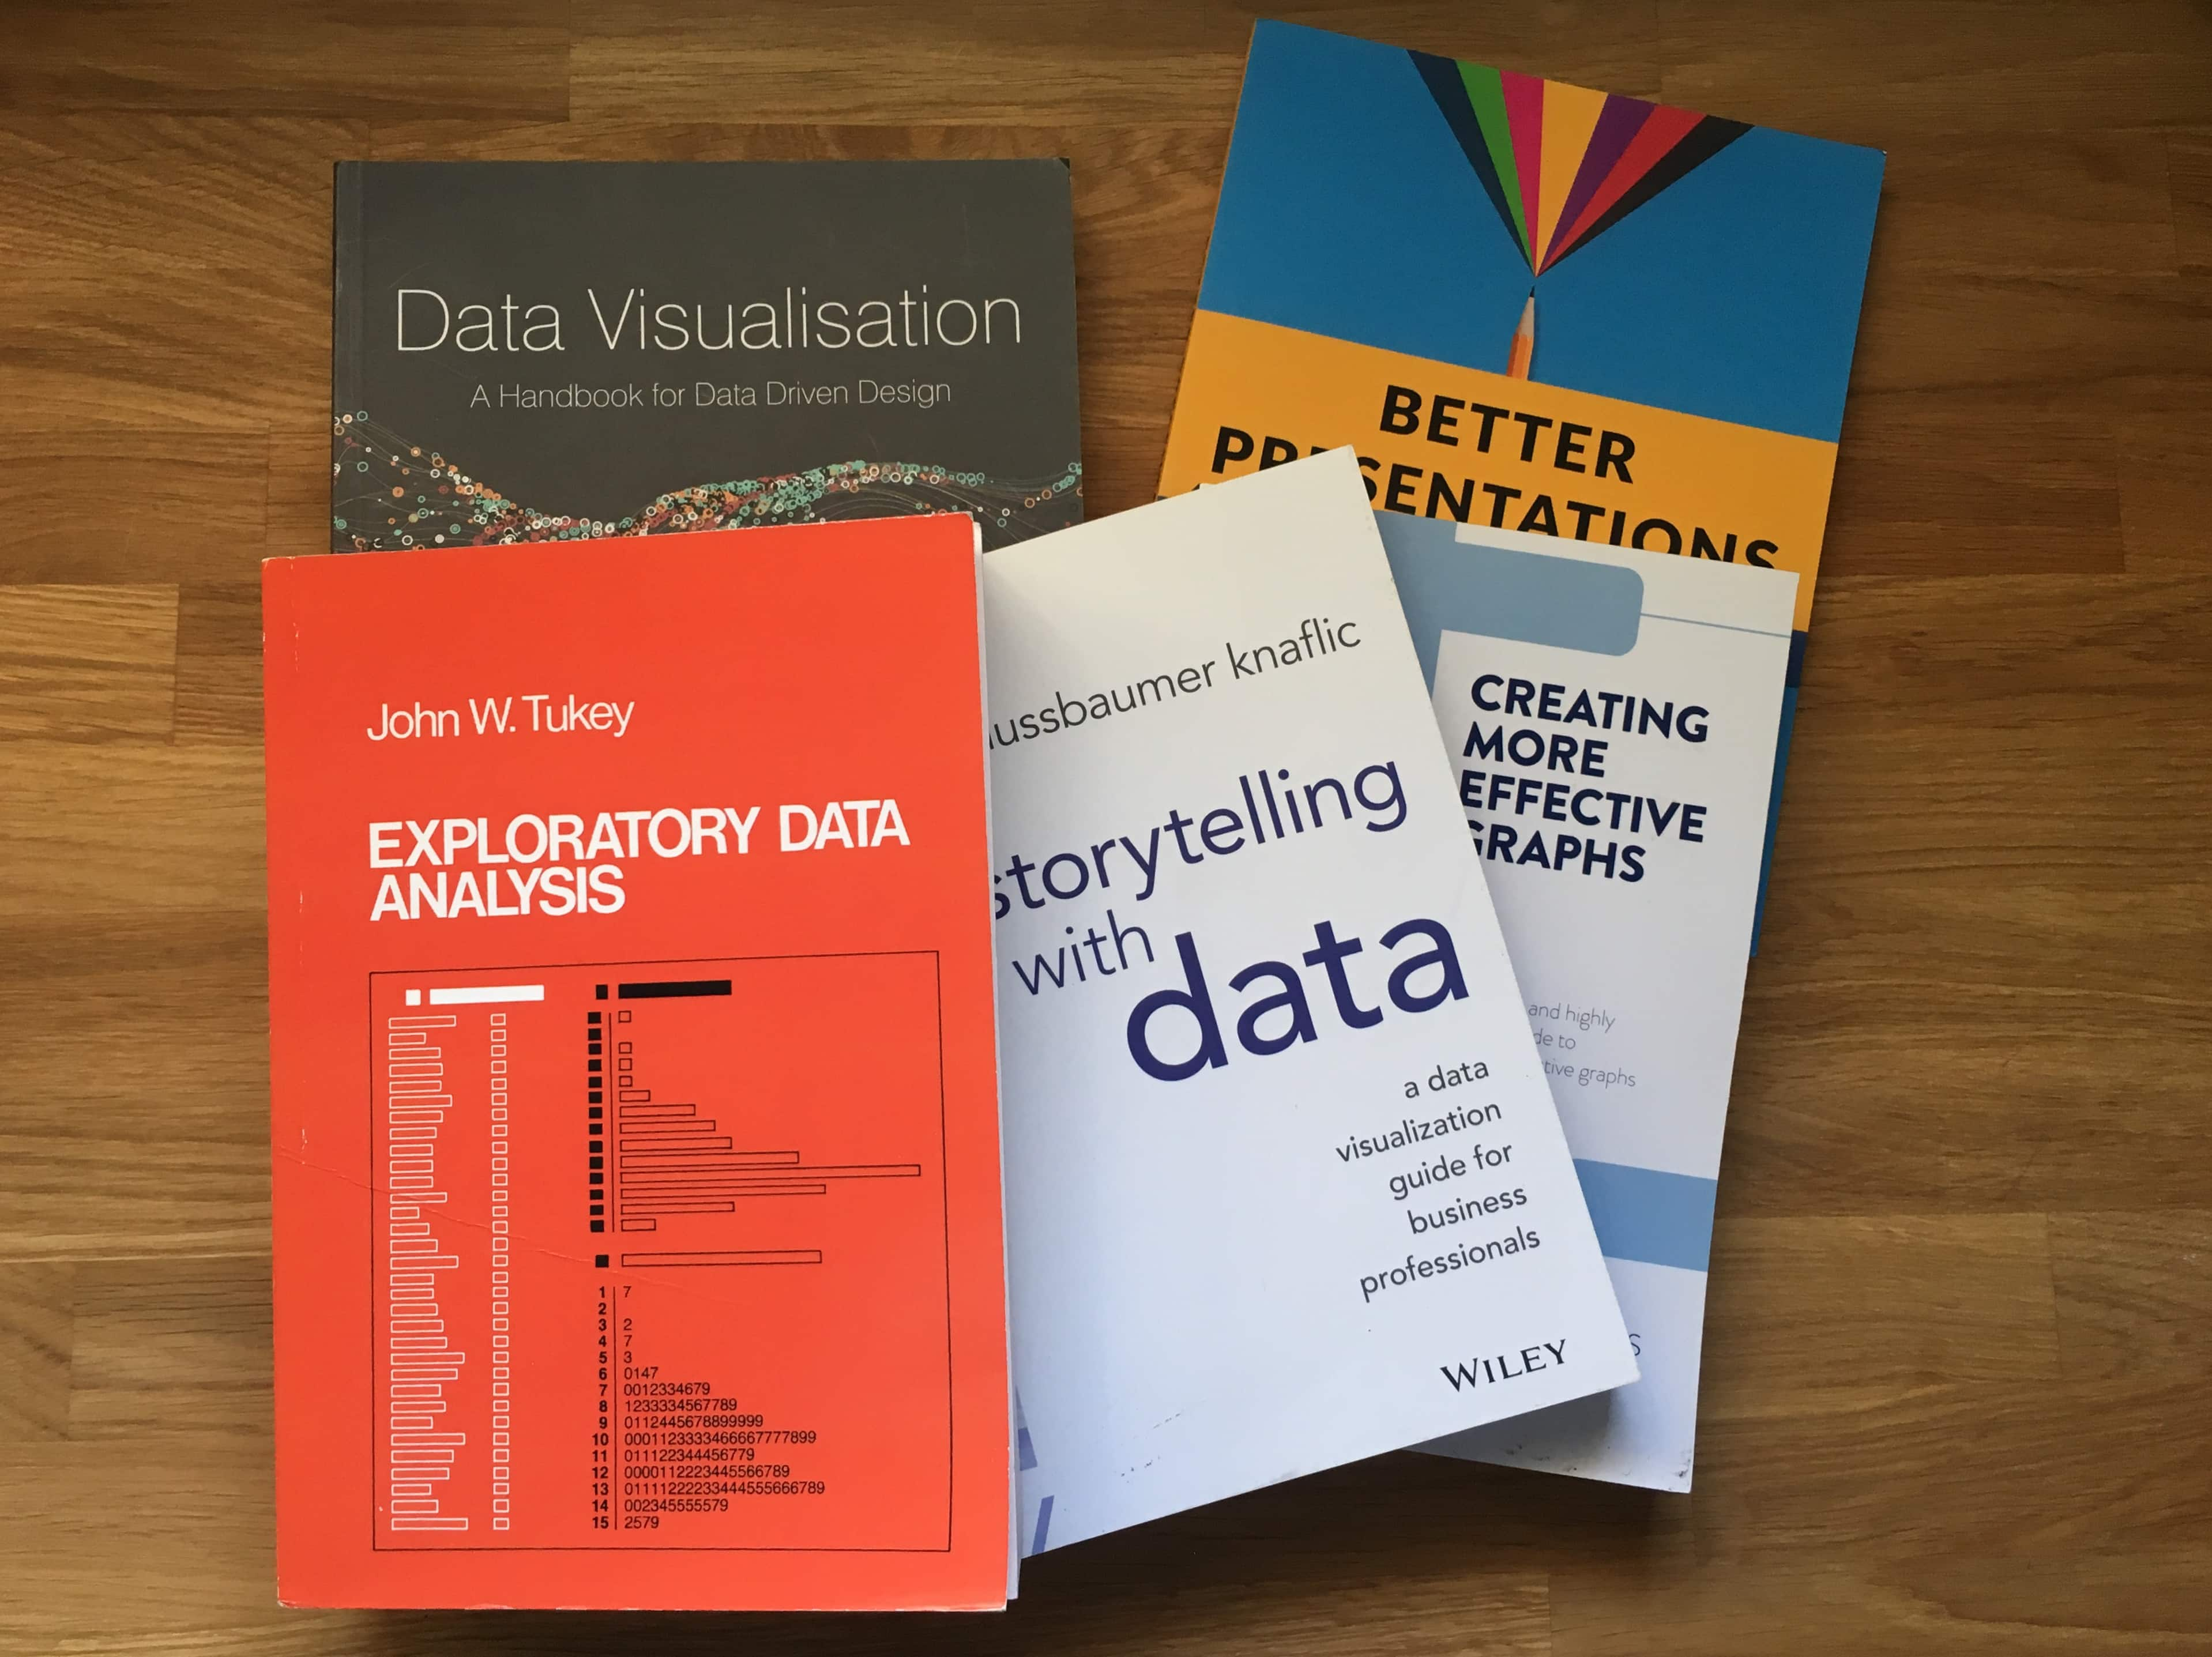 Free Book Giveaway - Policy Viz